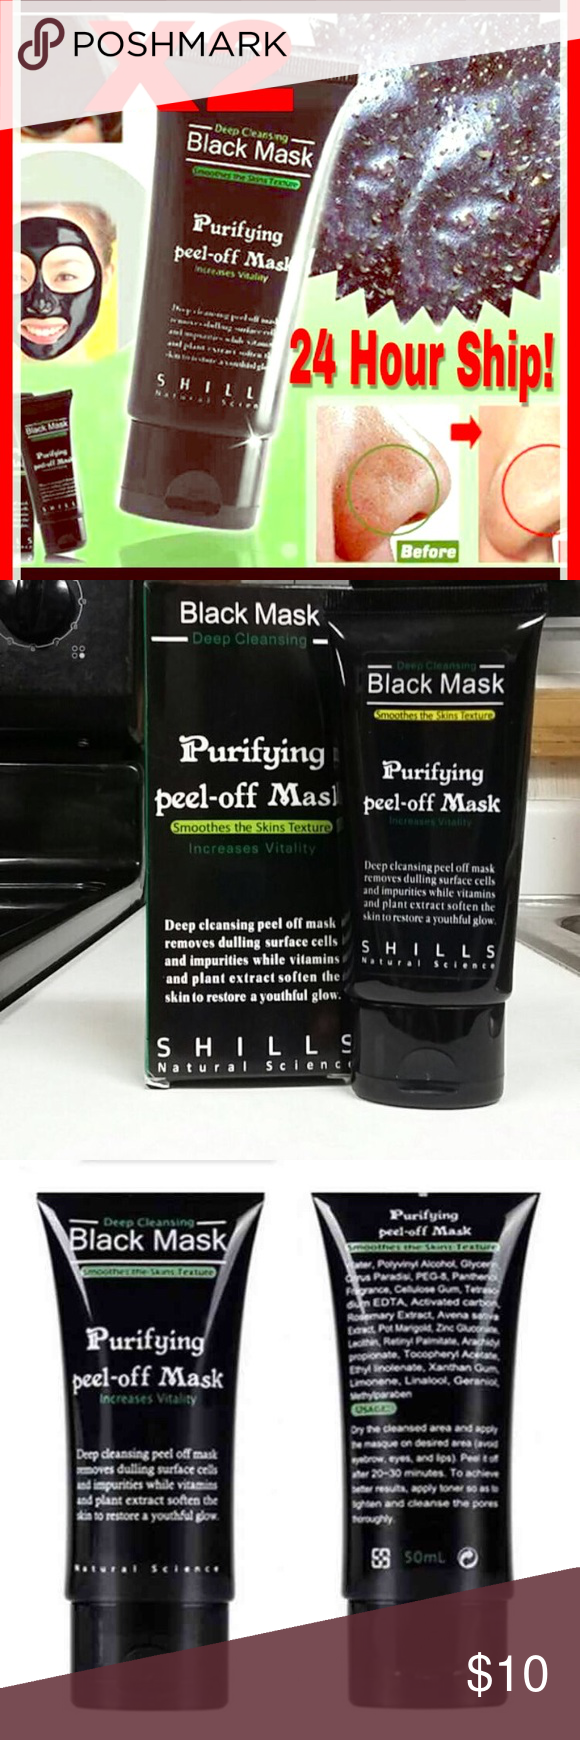 Two 50ml Bottles of Shills Black Mask Black Head R X 2 Boxes included in this offer.  With legions of fans, the FAMOUS & 100% GENUINE black peel-off mask from Shills is here. The ORIGINAL Shills Deep Cleansing Purifying Peel-Off Black Face Mask has earned its superstar status by being the ultimate blackhead-buster. Specially-formulated to unblock clogged pores by peeling blackheads, dirt and spot-causing bacteria away. Activated bamboo charcoal acts like a magnet to draw out the most…